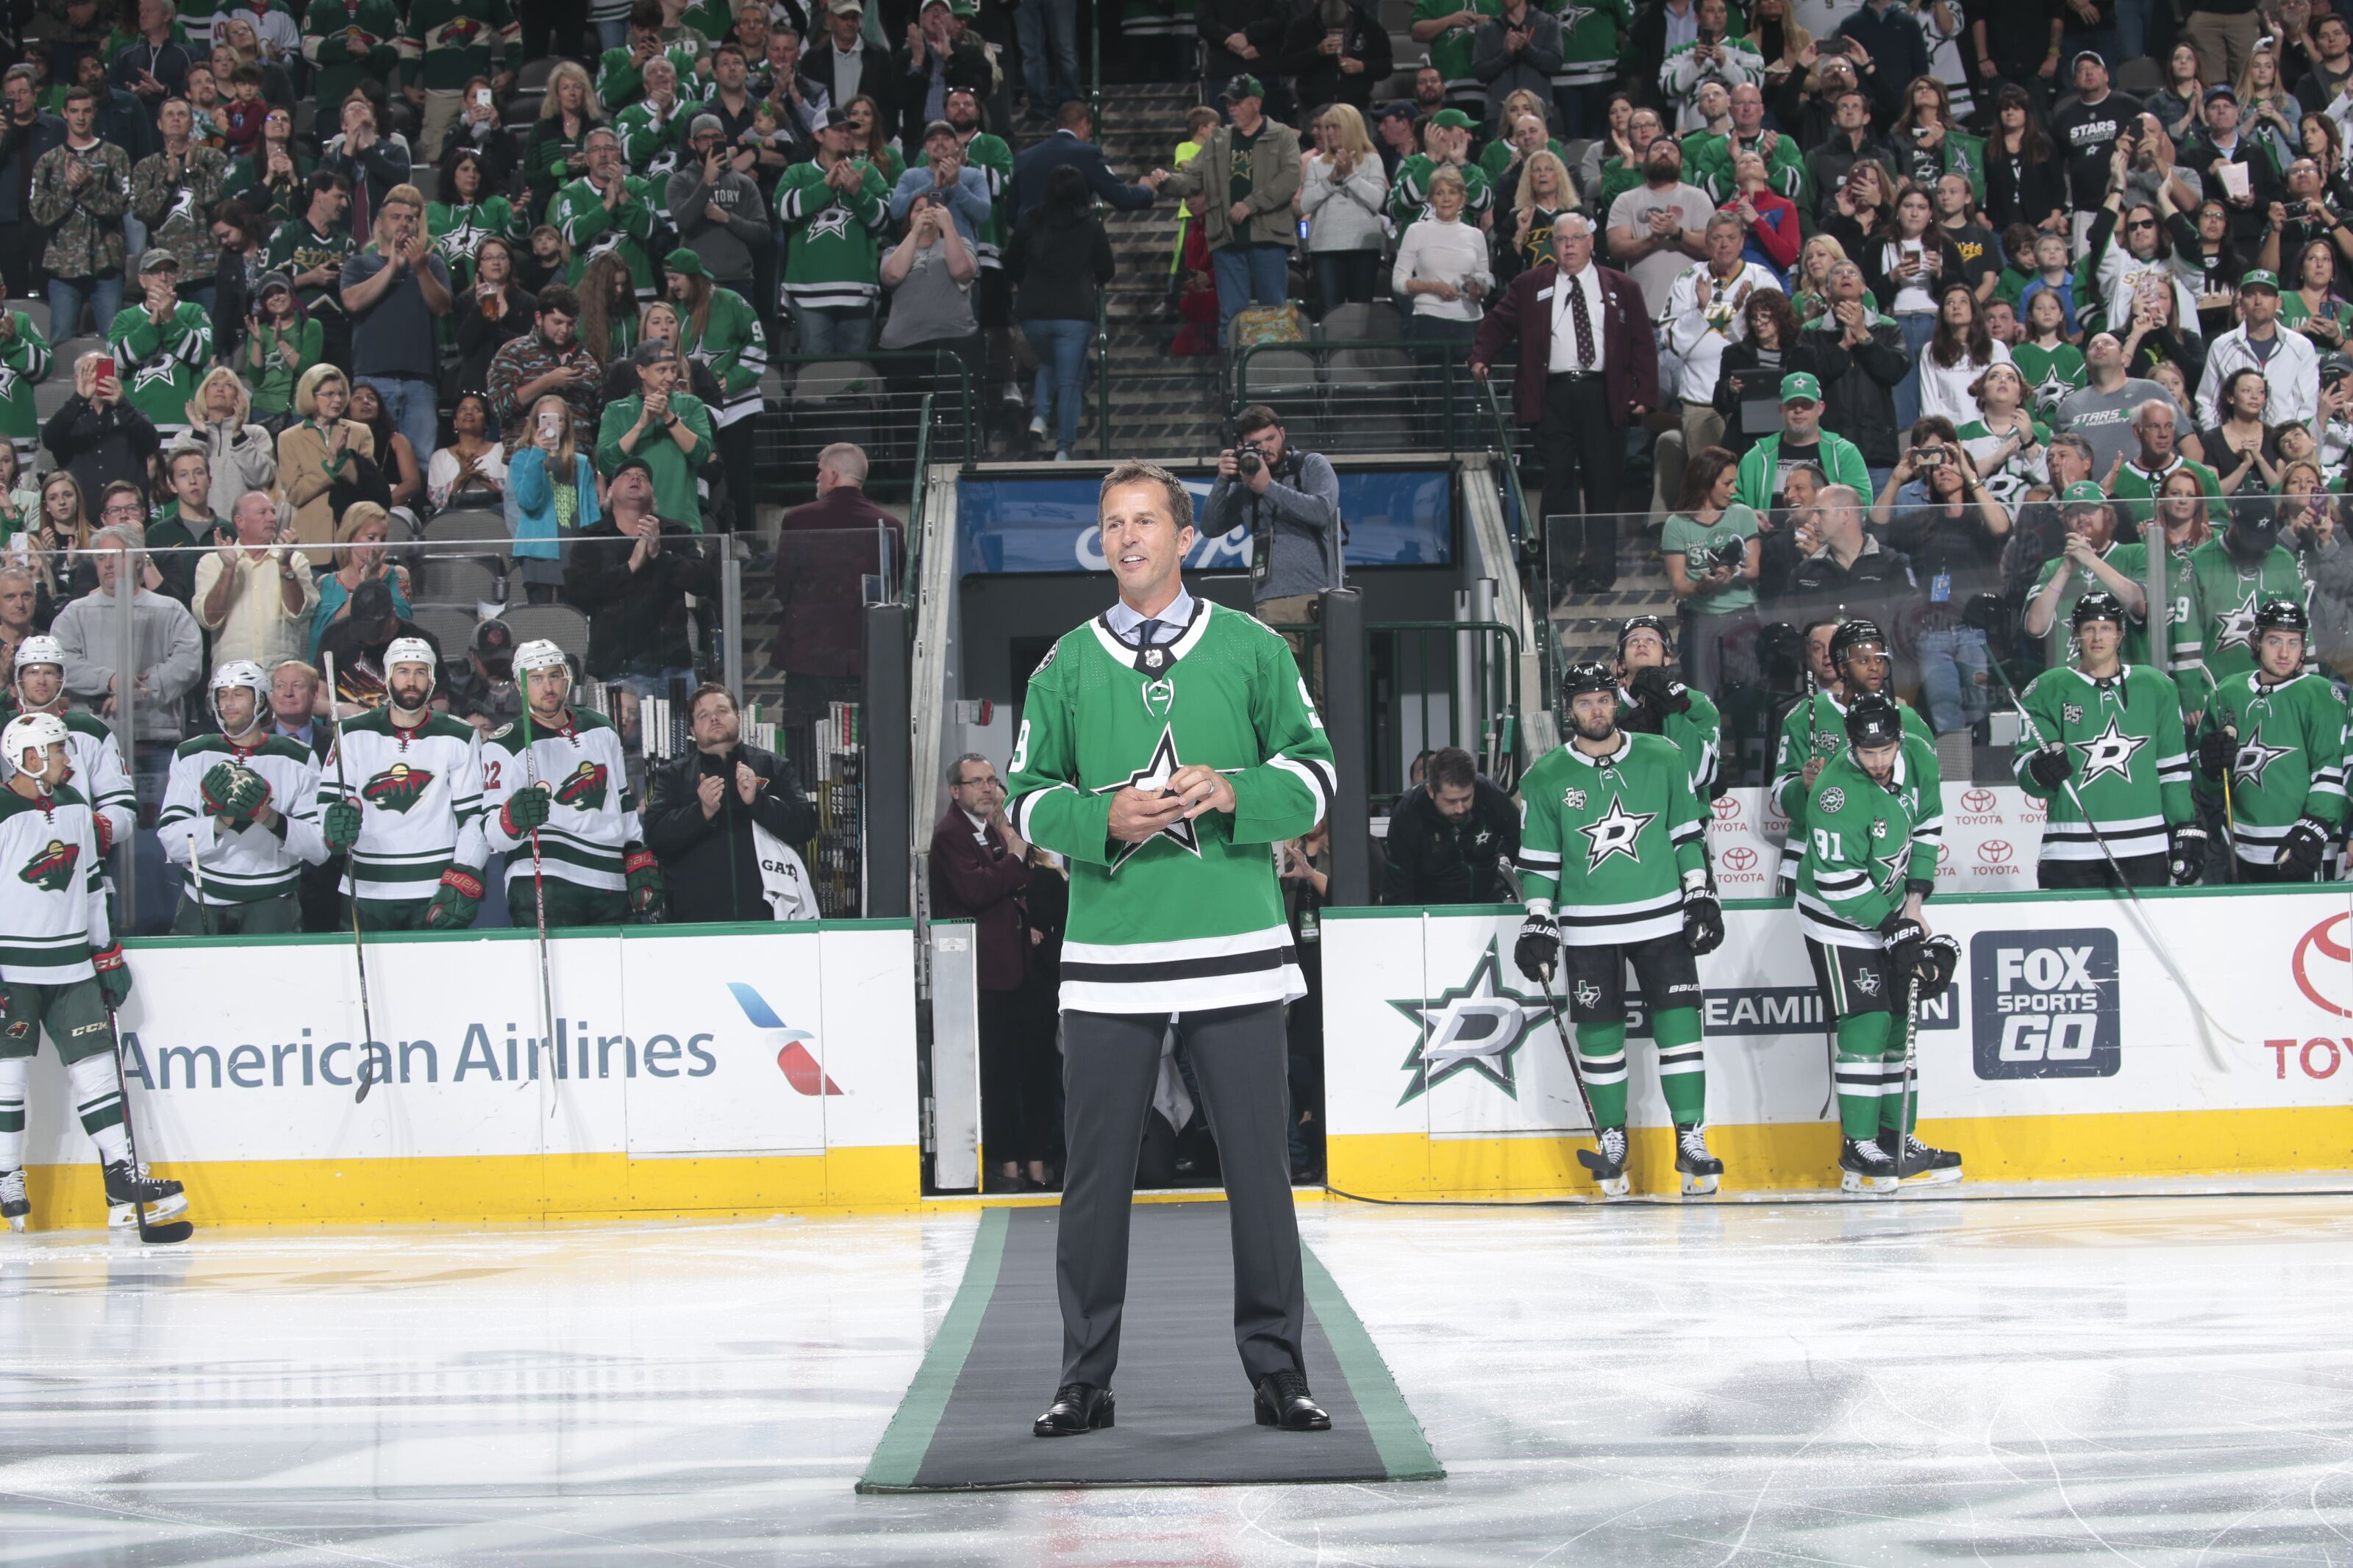 Dallas Stars News: Mike Modano Inducted Into IIHF Hall Of Fame